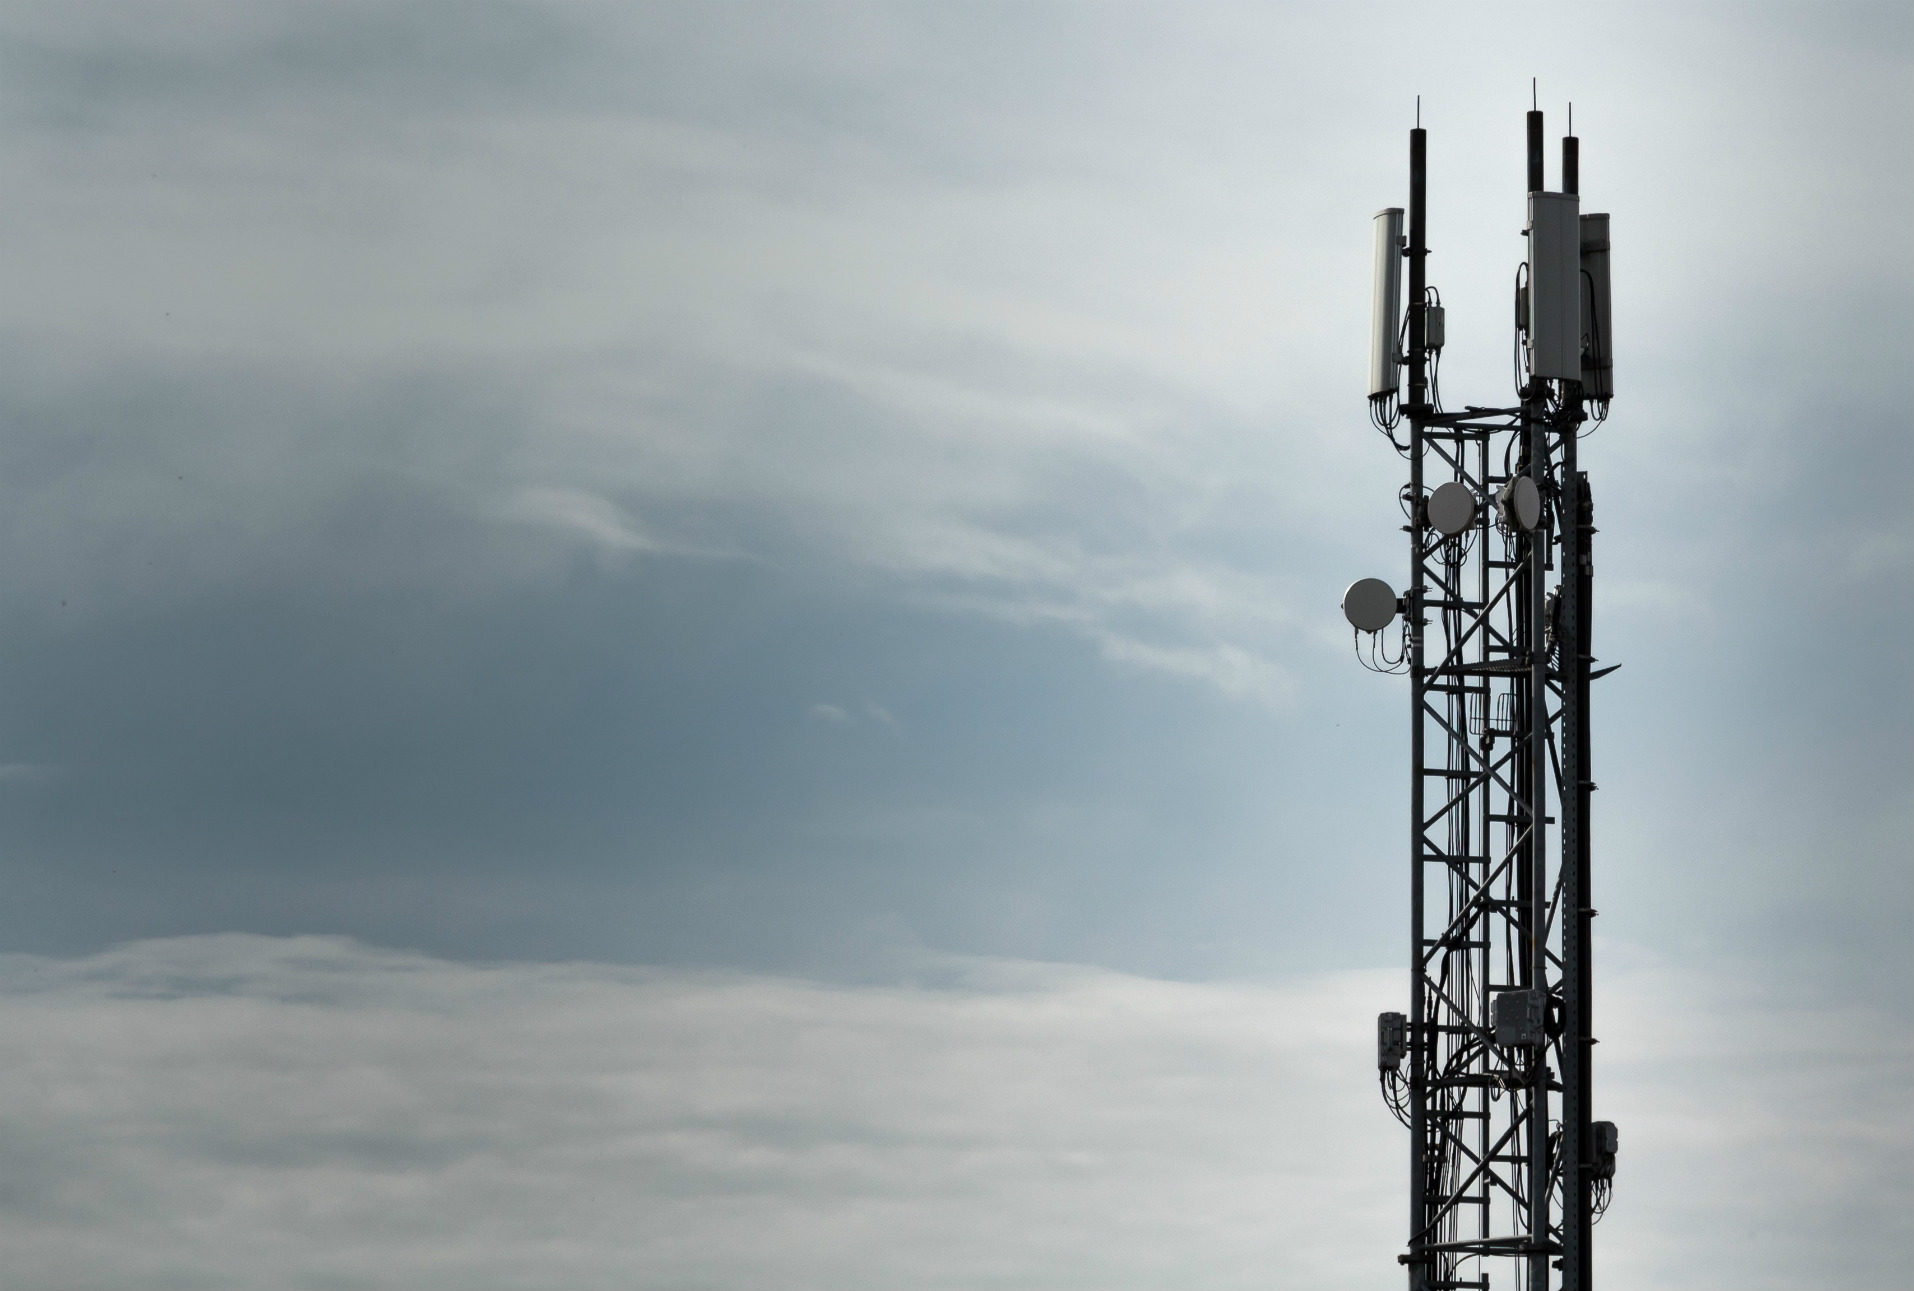 Redes 4G y 5G son vulnerables a ataques con IMSI catchers, revelan investigadores